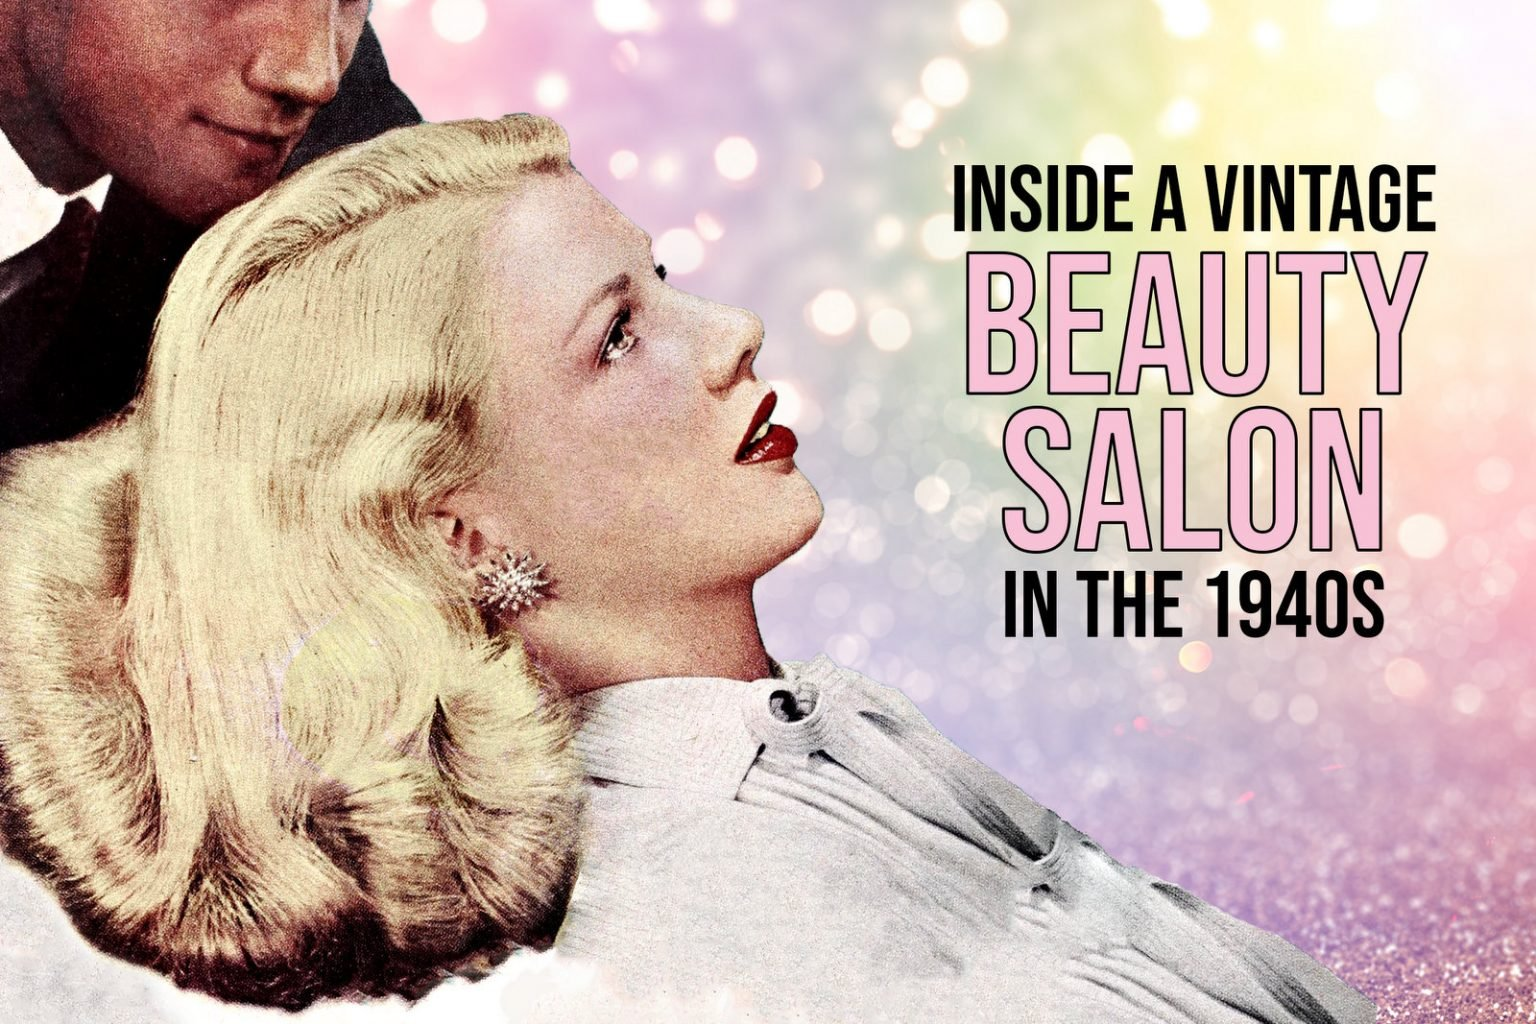 A visit to the beauty salon in 1942